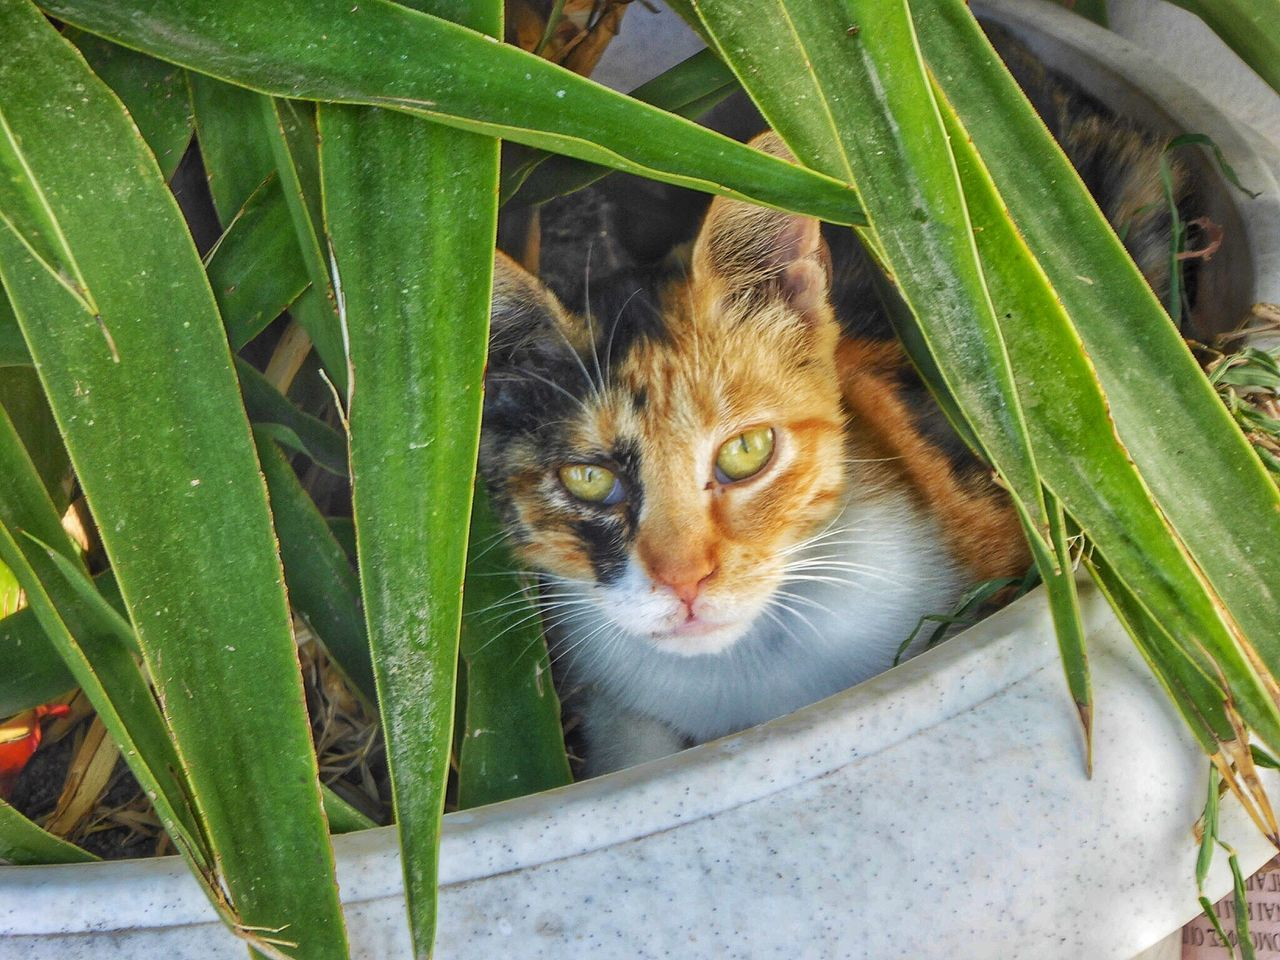 Cat Cats Cat Lovers Cat♡ Catlovers Cats 🐱 Cats Of Greece Ikaria Greece GREECE ♥♥ Dodecanese